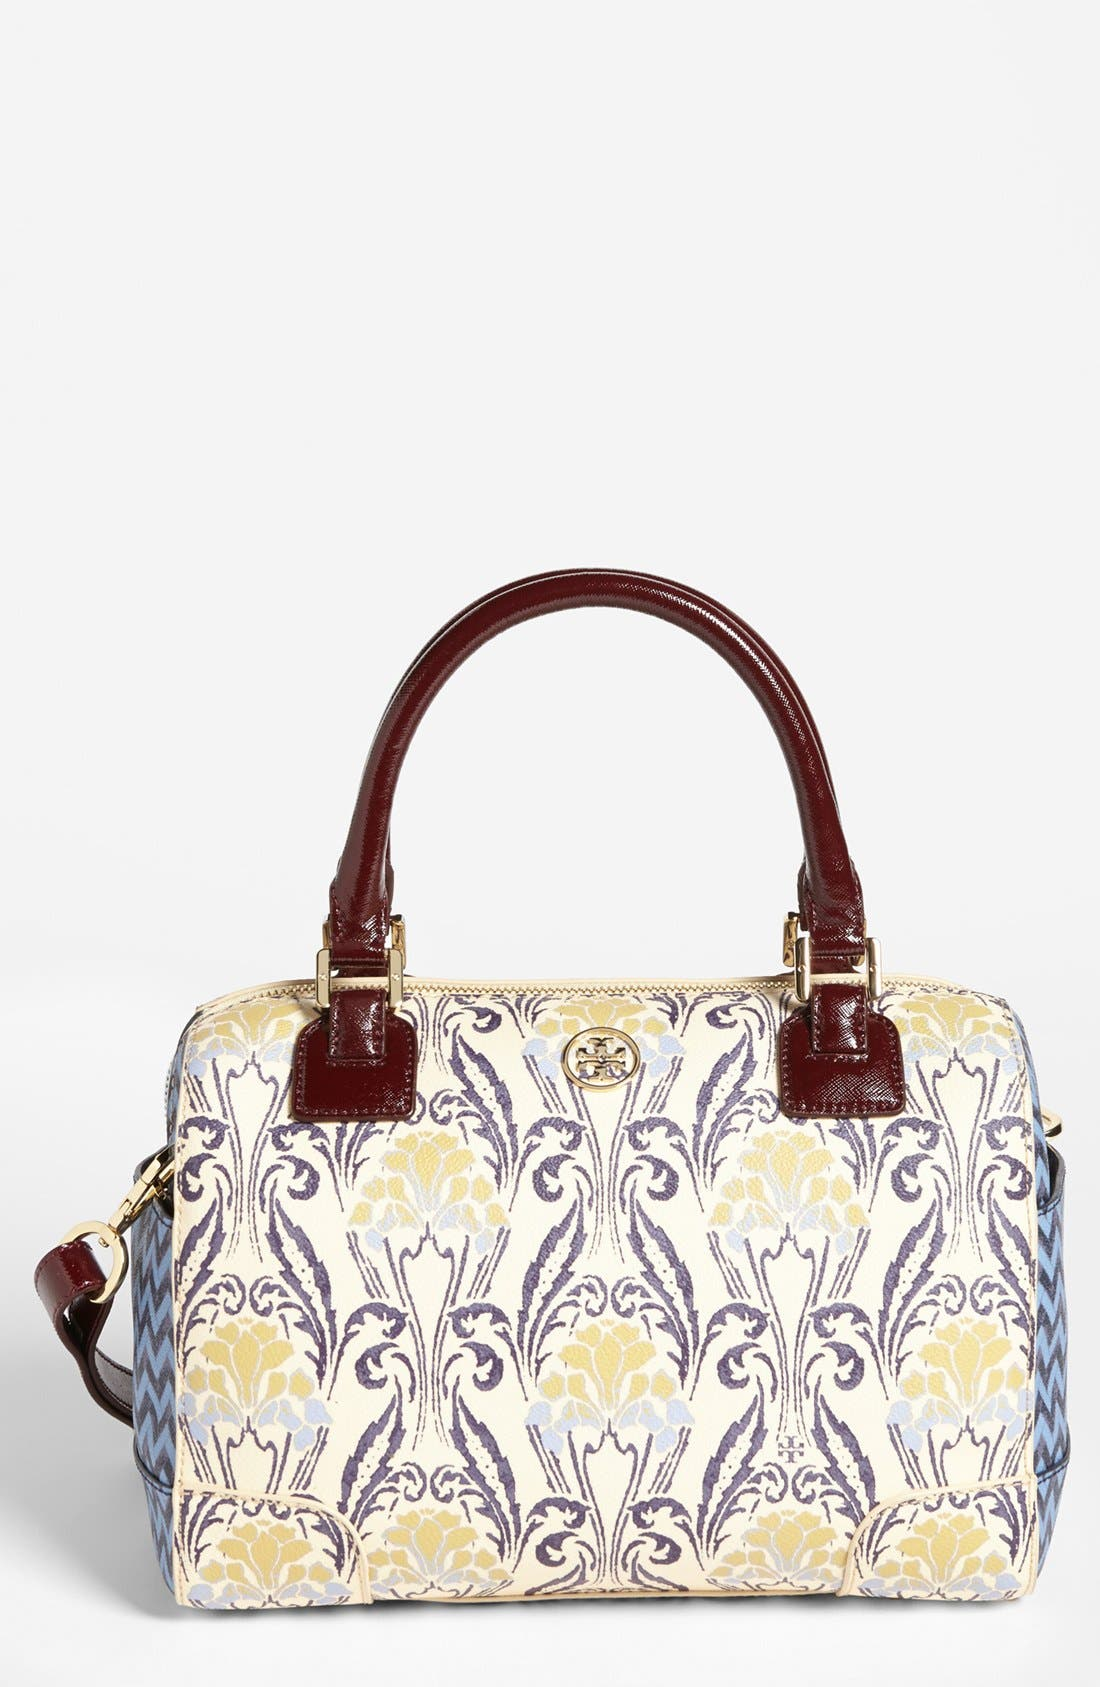 Alternate Image 1 Selected - Tory Burch 'Robinson - Middy' Satchel